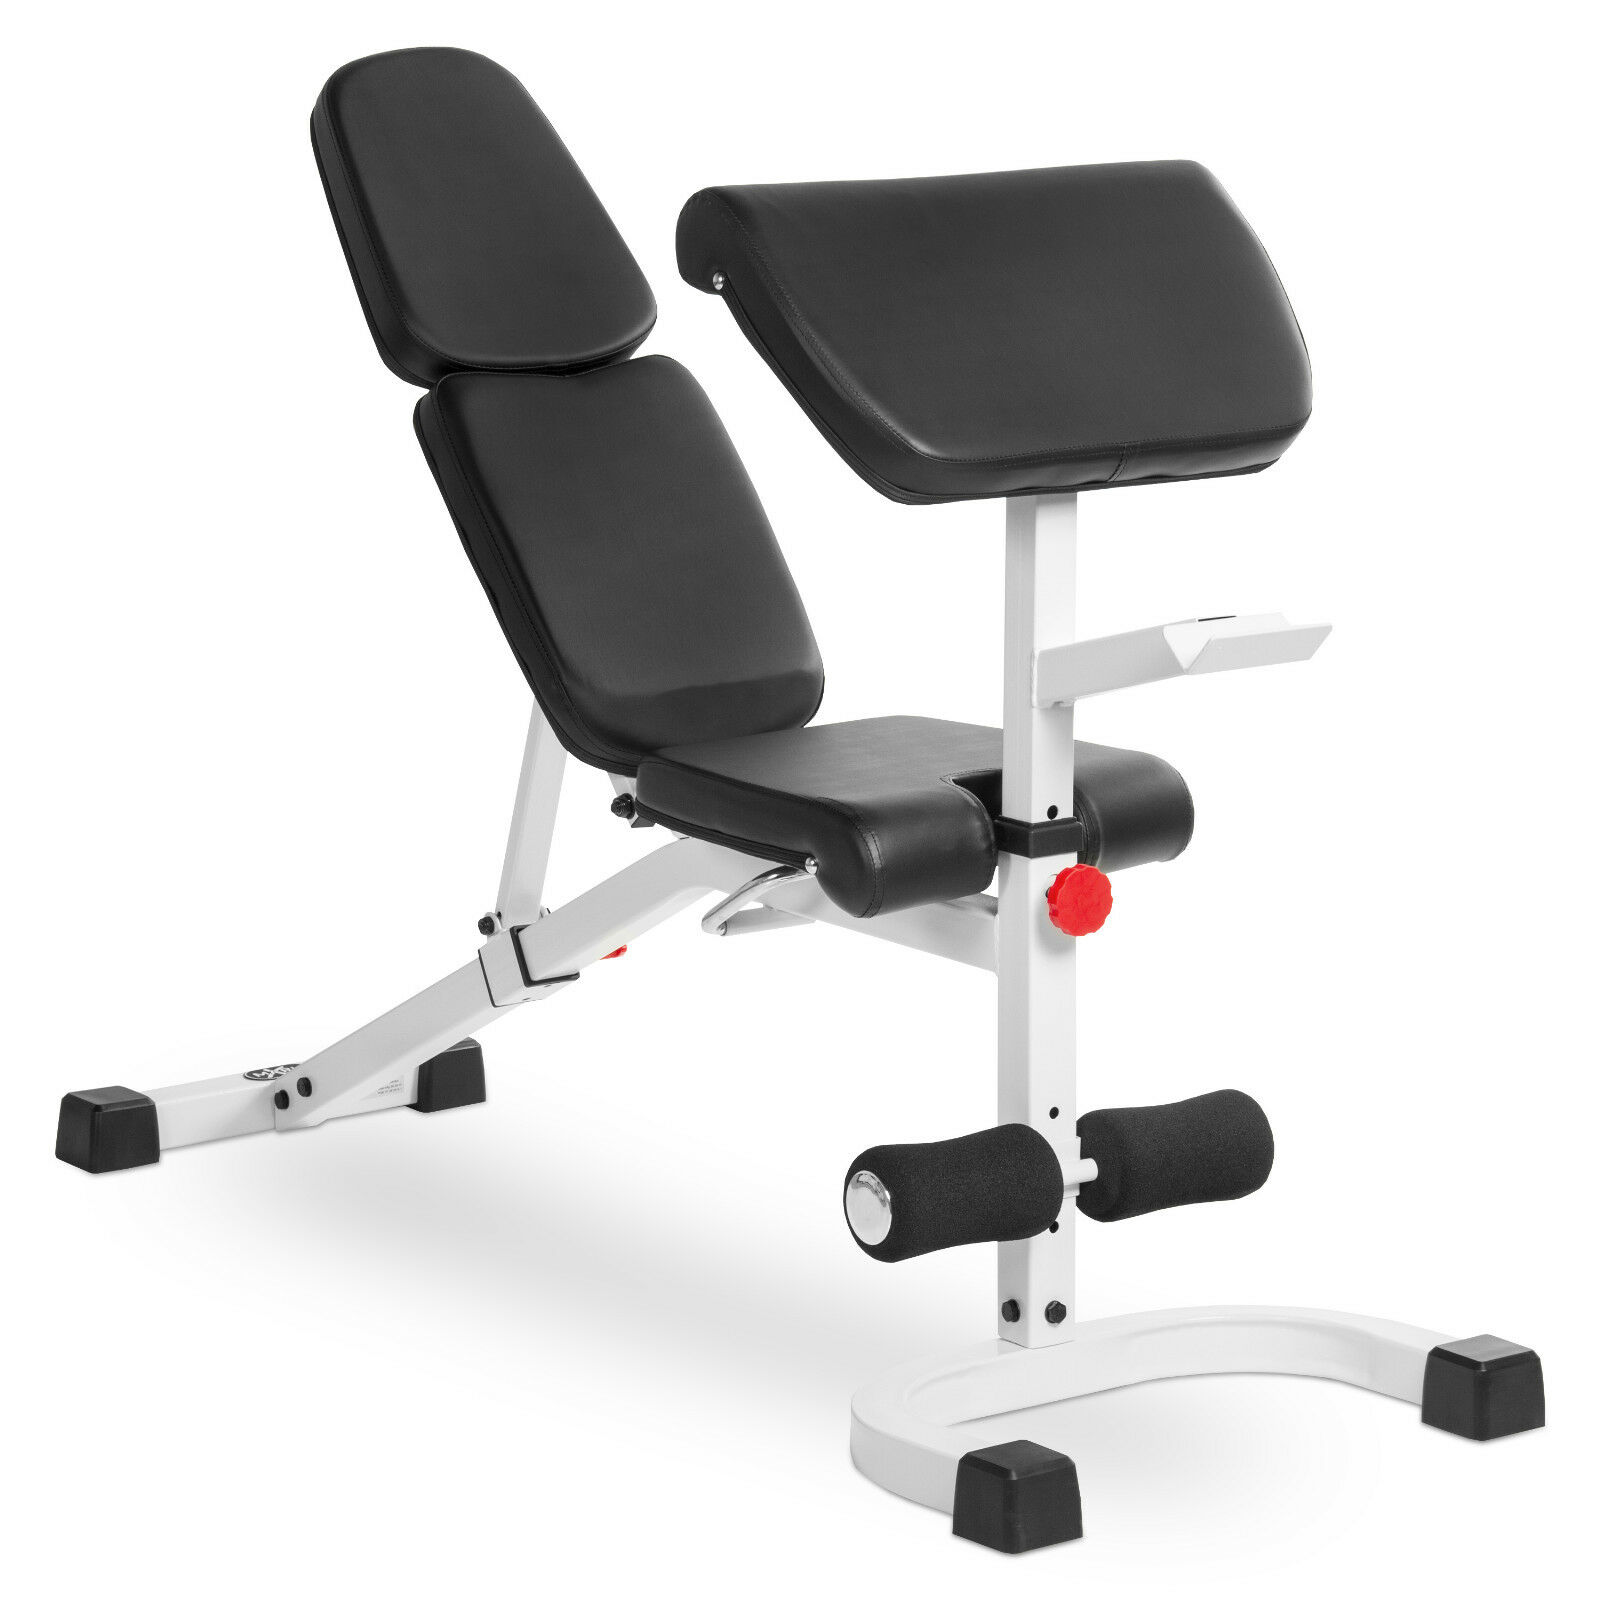 XMark Fitness Flat Incline Decline  (FID) Bench with Preacher Curl XM-4417-WHITE  save 35% - 70% off